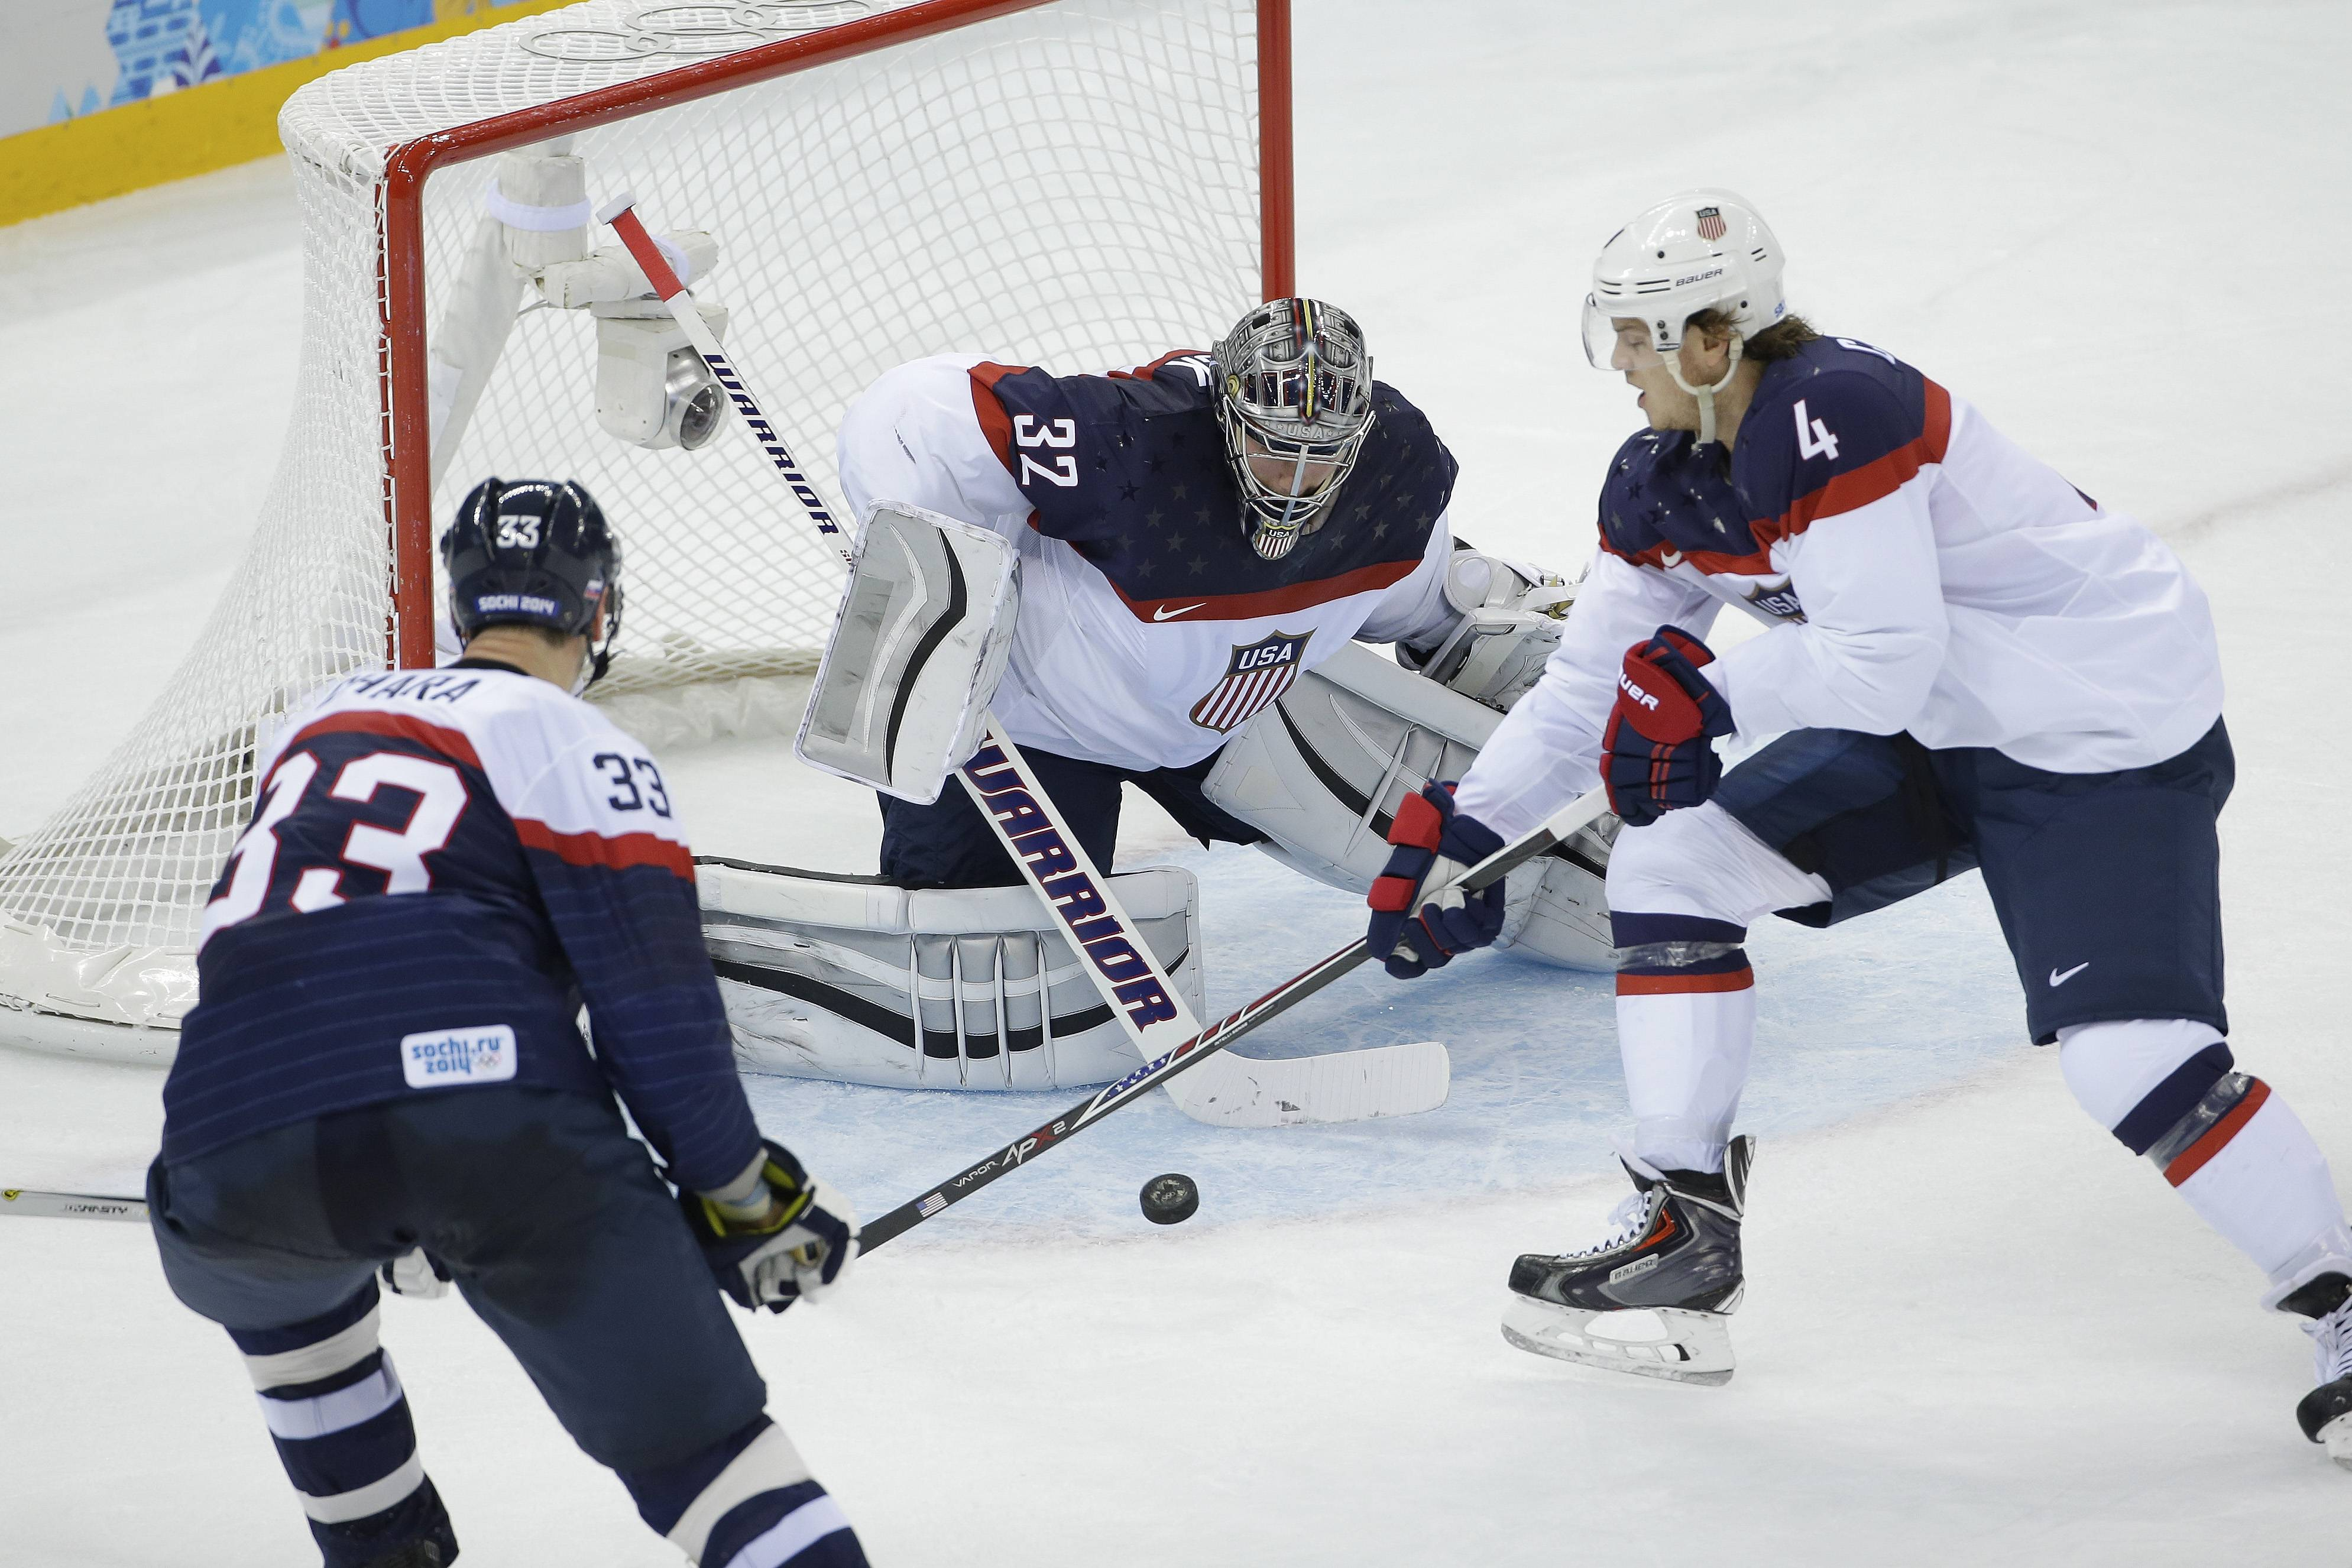 USA goaltender Jonathan Quick and defenseman John Carlson (4) defend against Slovakia defenseman Zdeno Chara (33) during the 2014 Winter Olympics men's ice hockey game at Shayba Arena, Thursday, Feb. 13, 2014, in Sochi, Russia. USA defeated Slovakia 7-1.